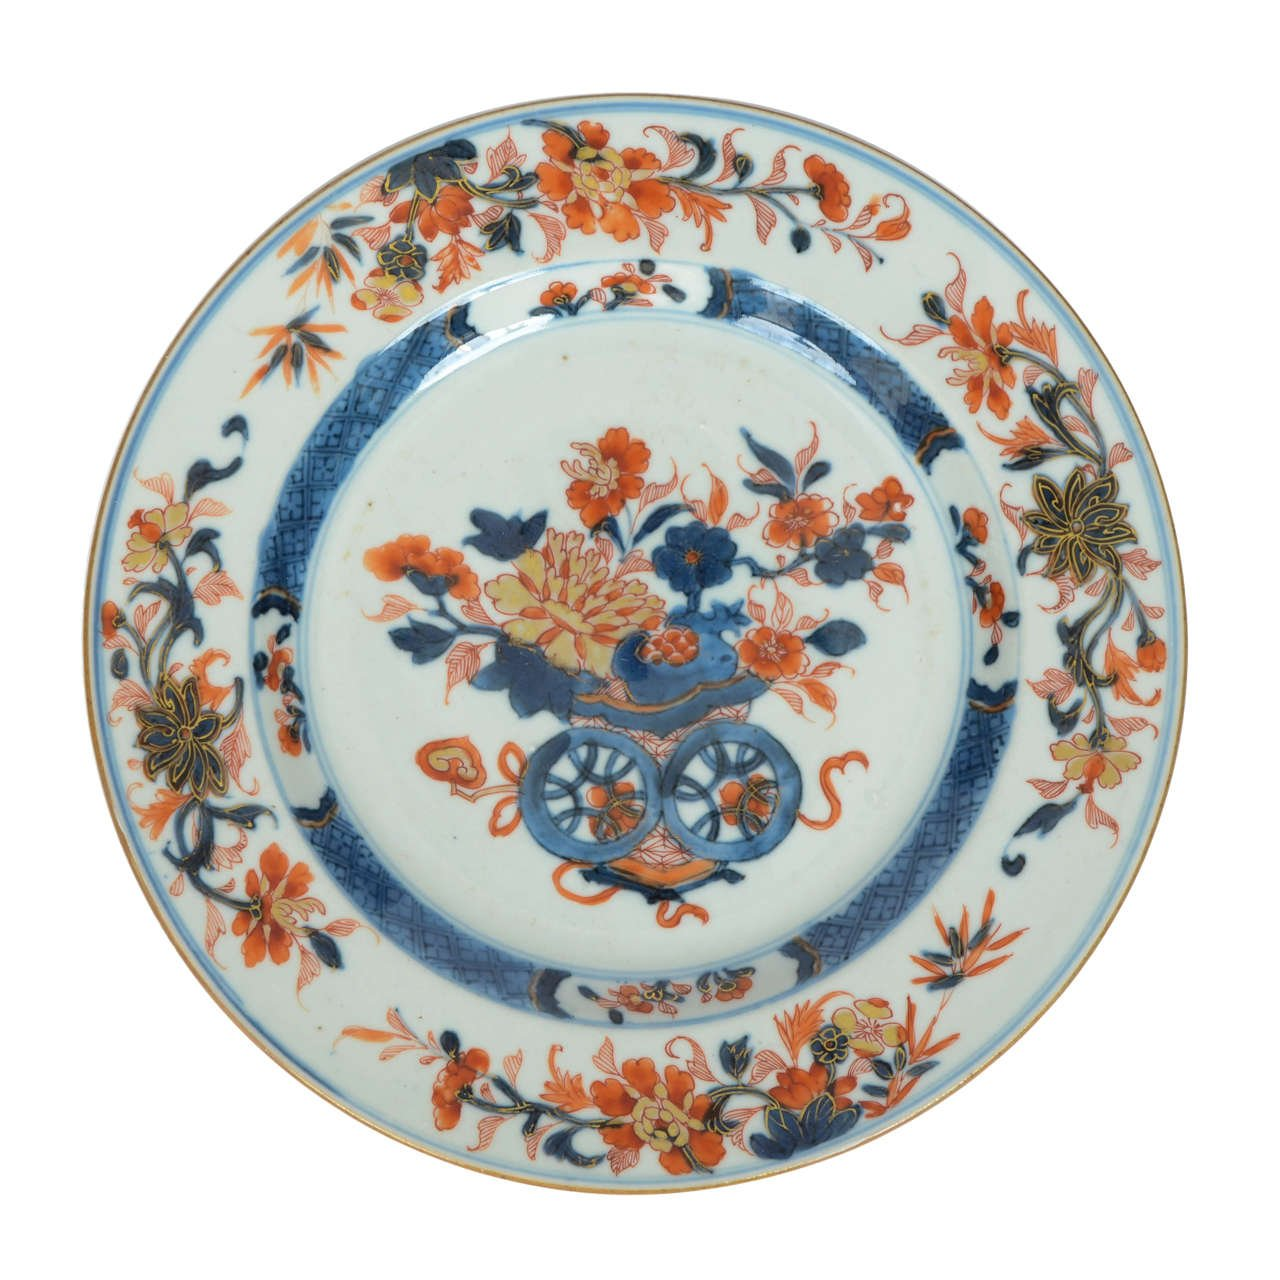 A classic example of Imari ware from 1stdibs.com